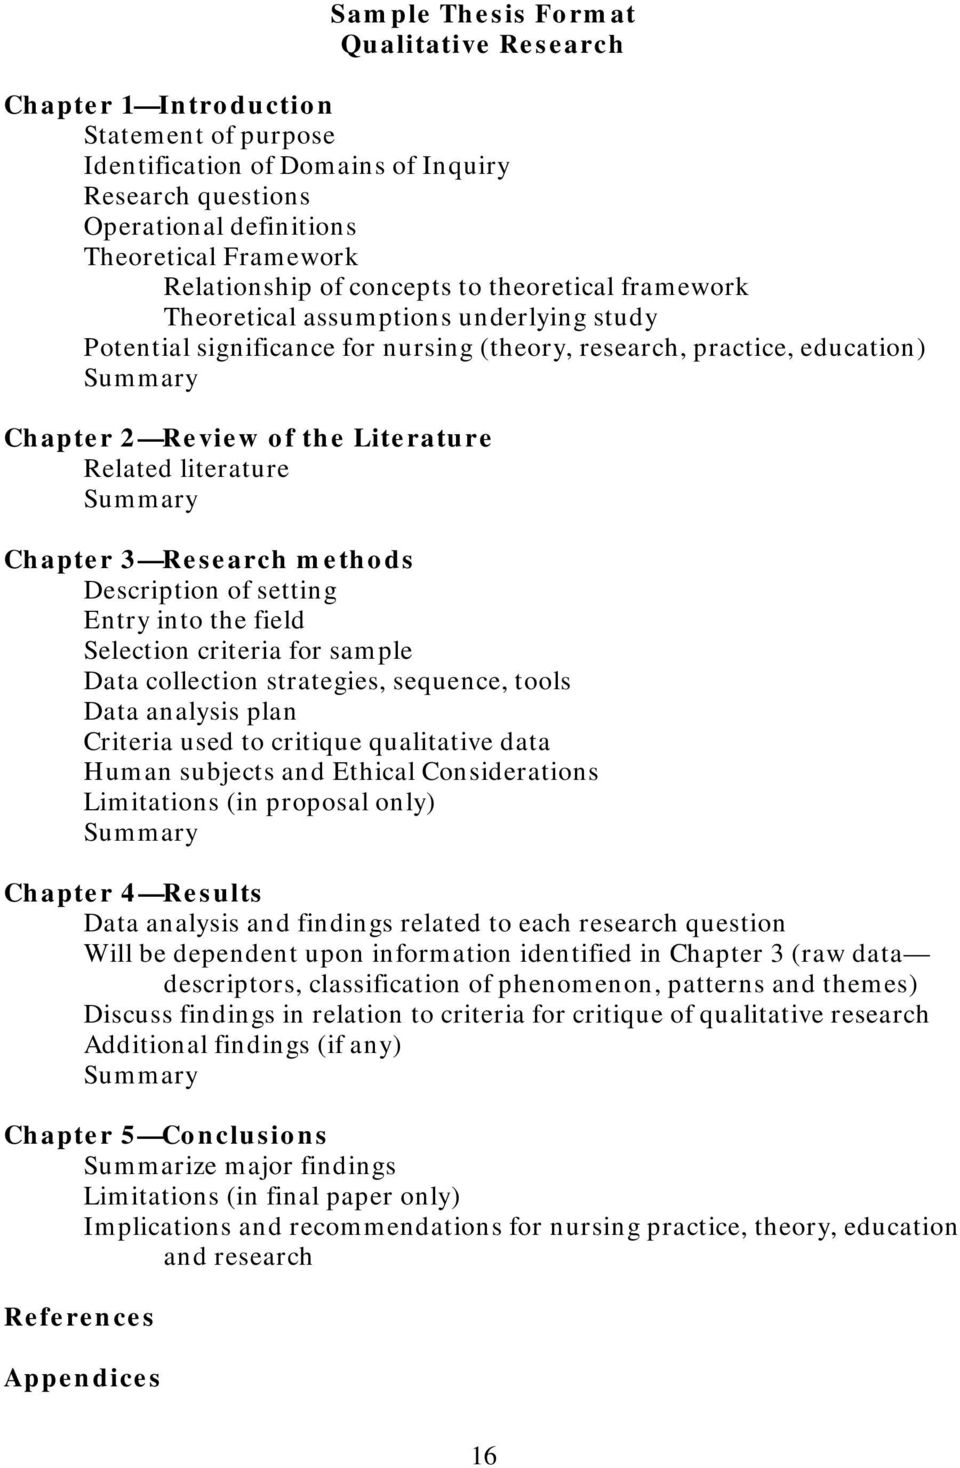 Literature Related literature Summary Chapter 3 Research methods Description of setting Entry into the field Selection criteria for sample Data collection strategies, sequence, tools Data analysis